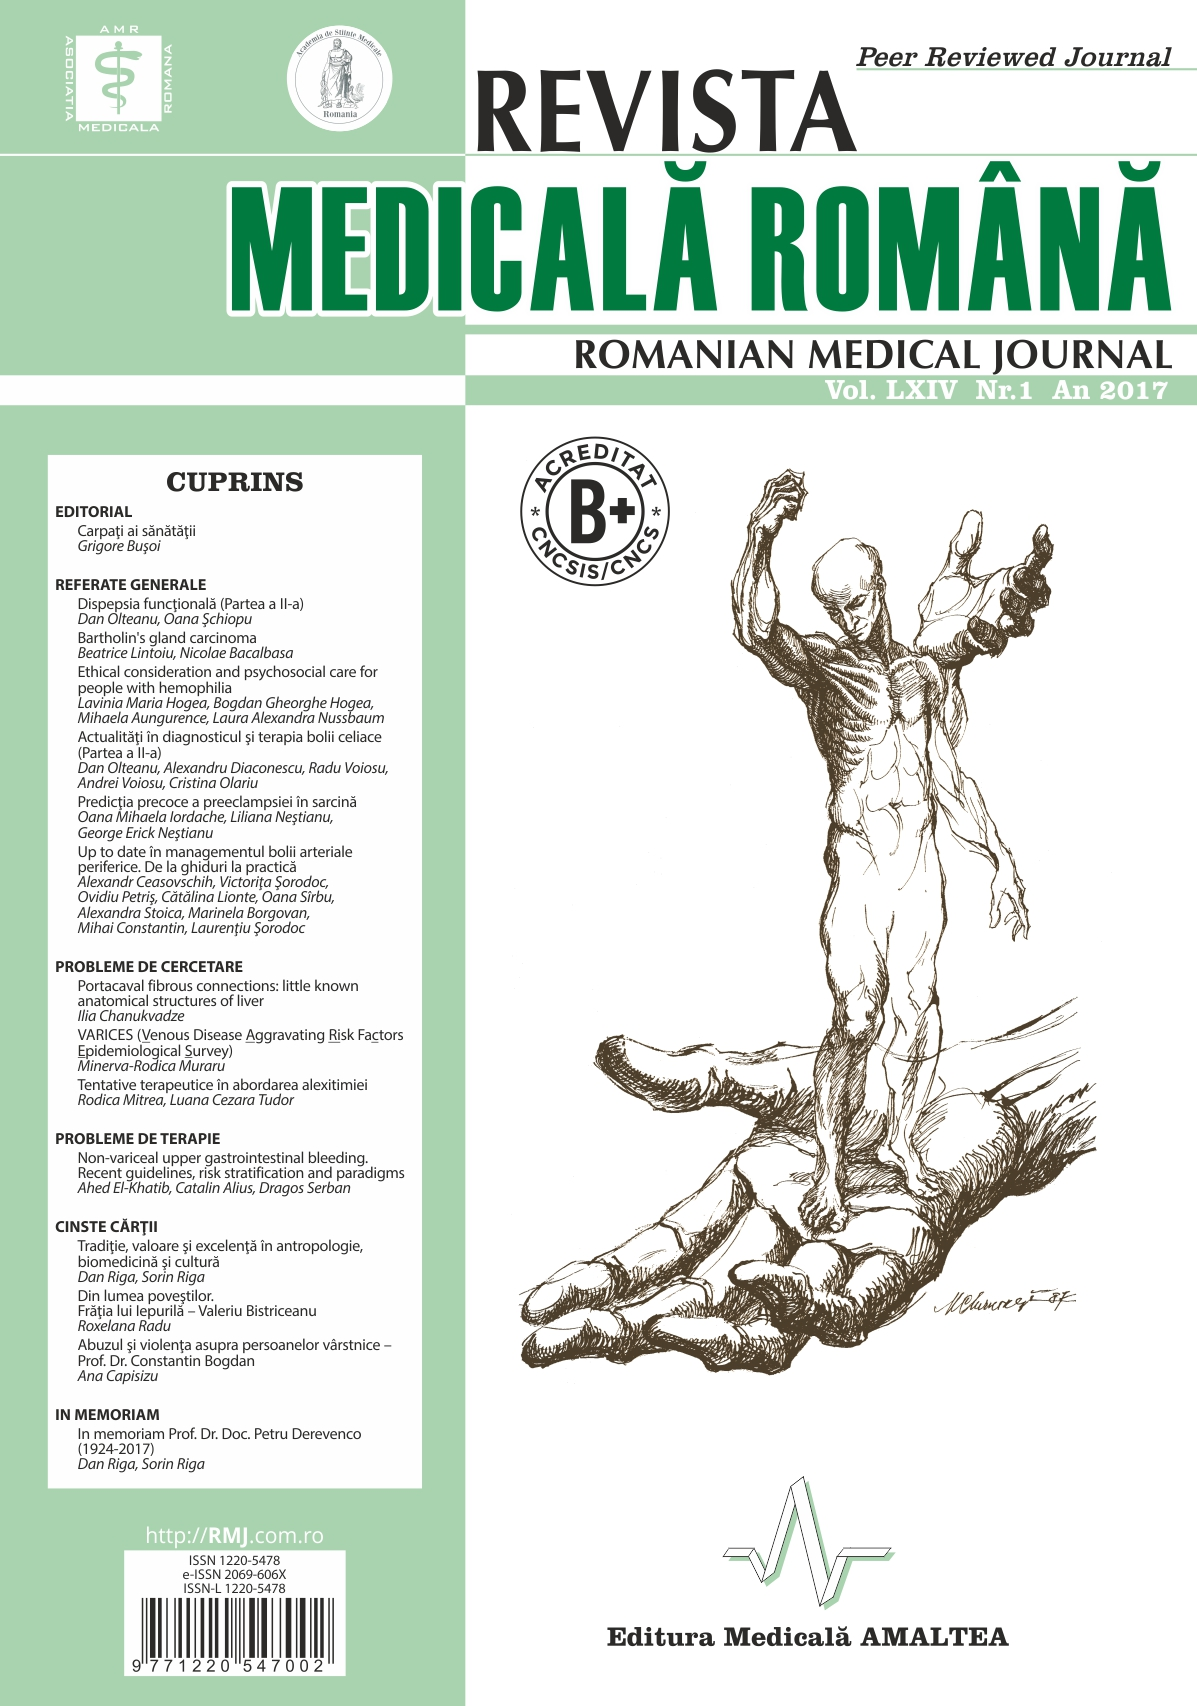 REVISTA MEDICALA ROMANA - Romanian Medical Journal, Vol. LXIV, No. 1, Year 2017